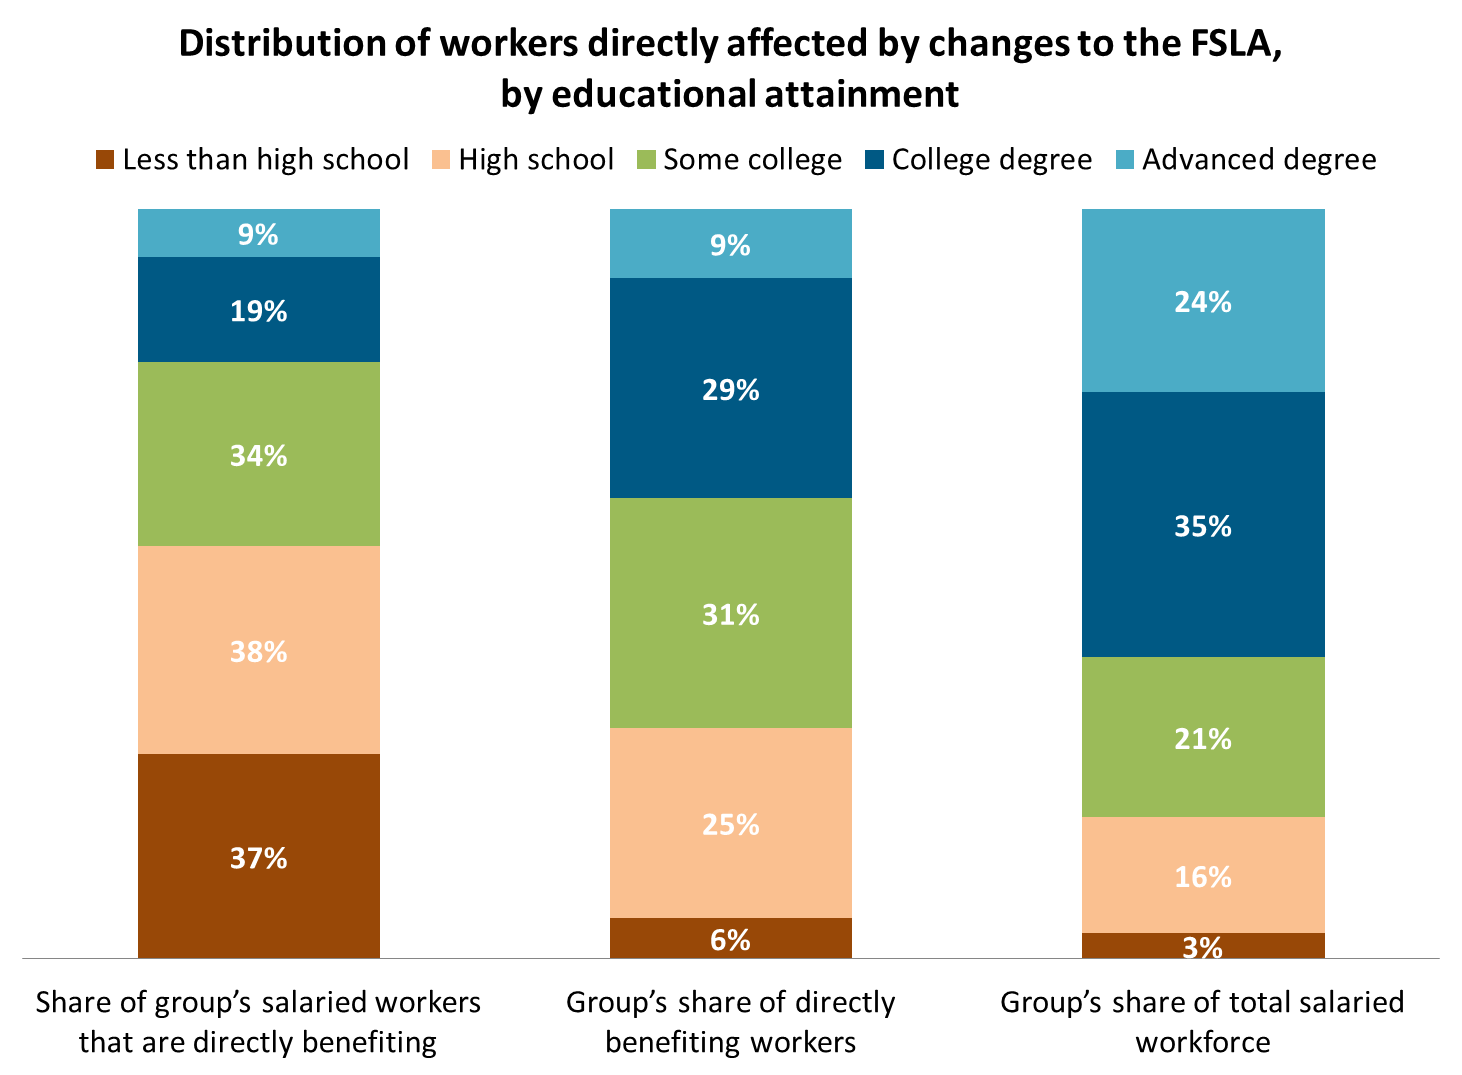 Distribution of workers directly affected by changes